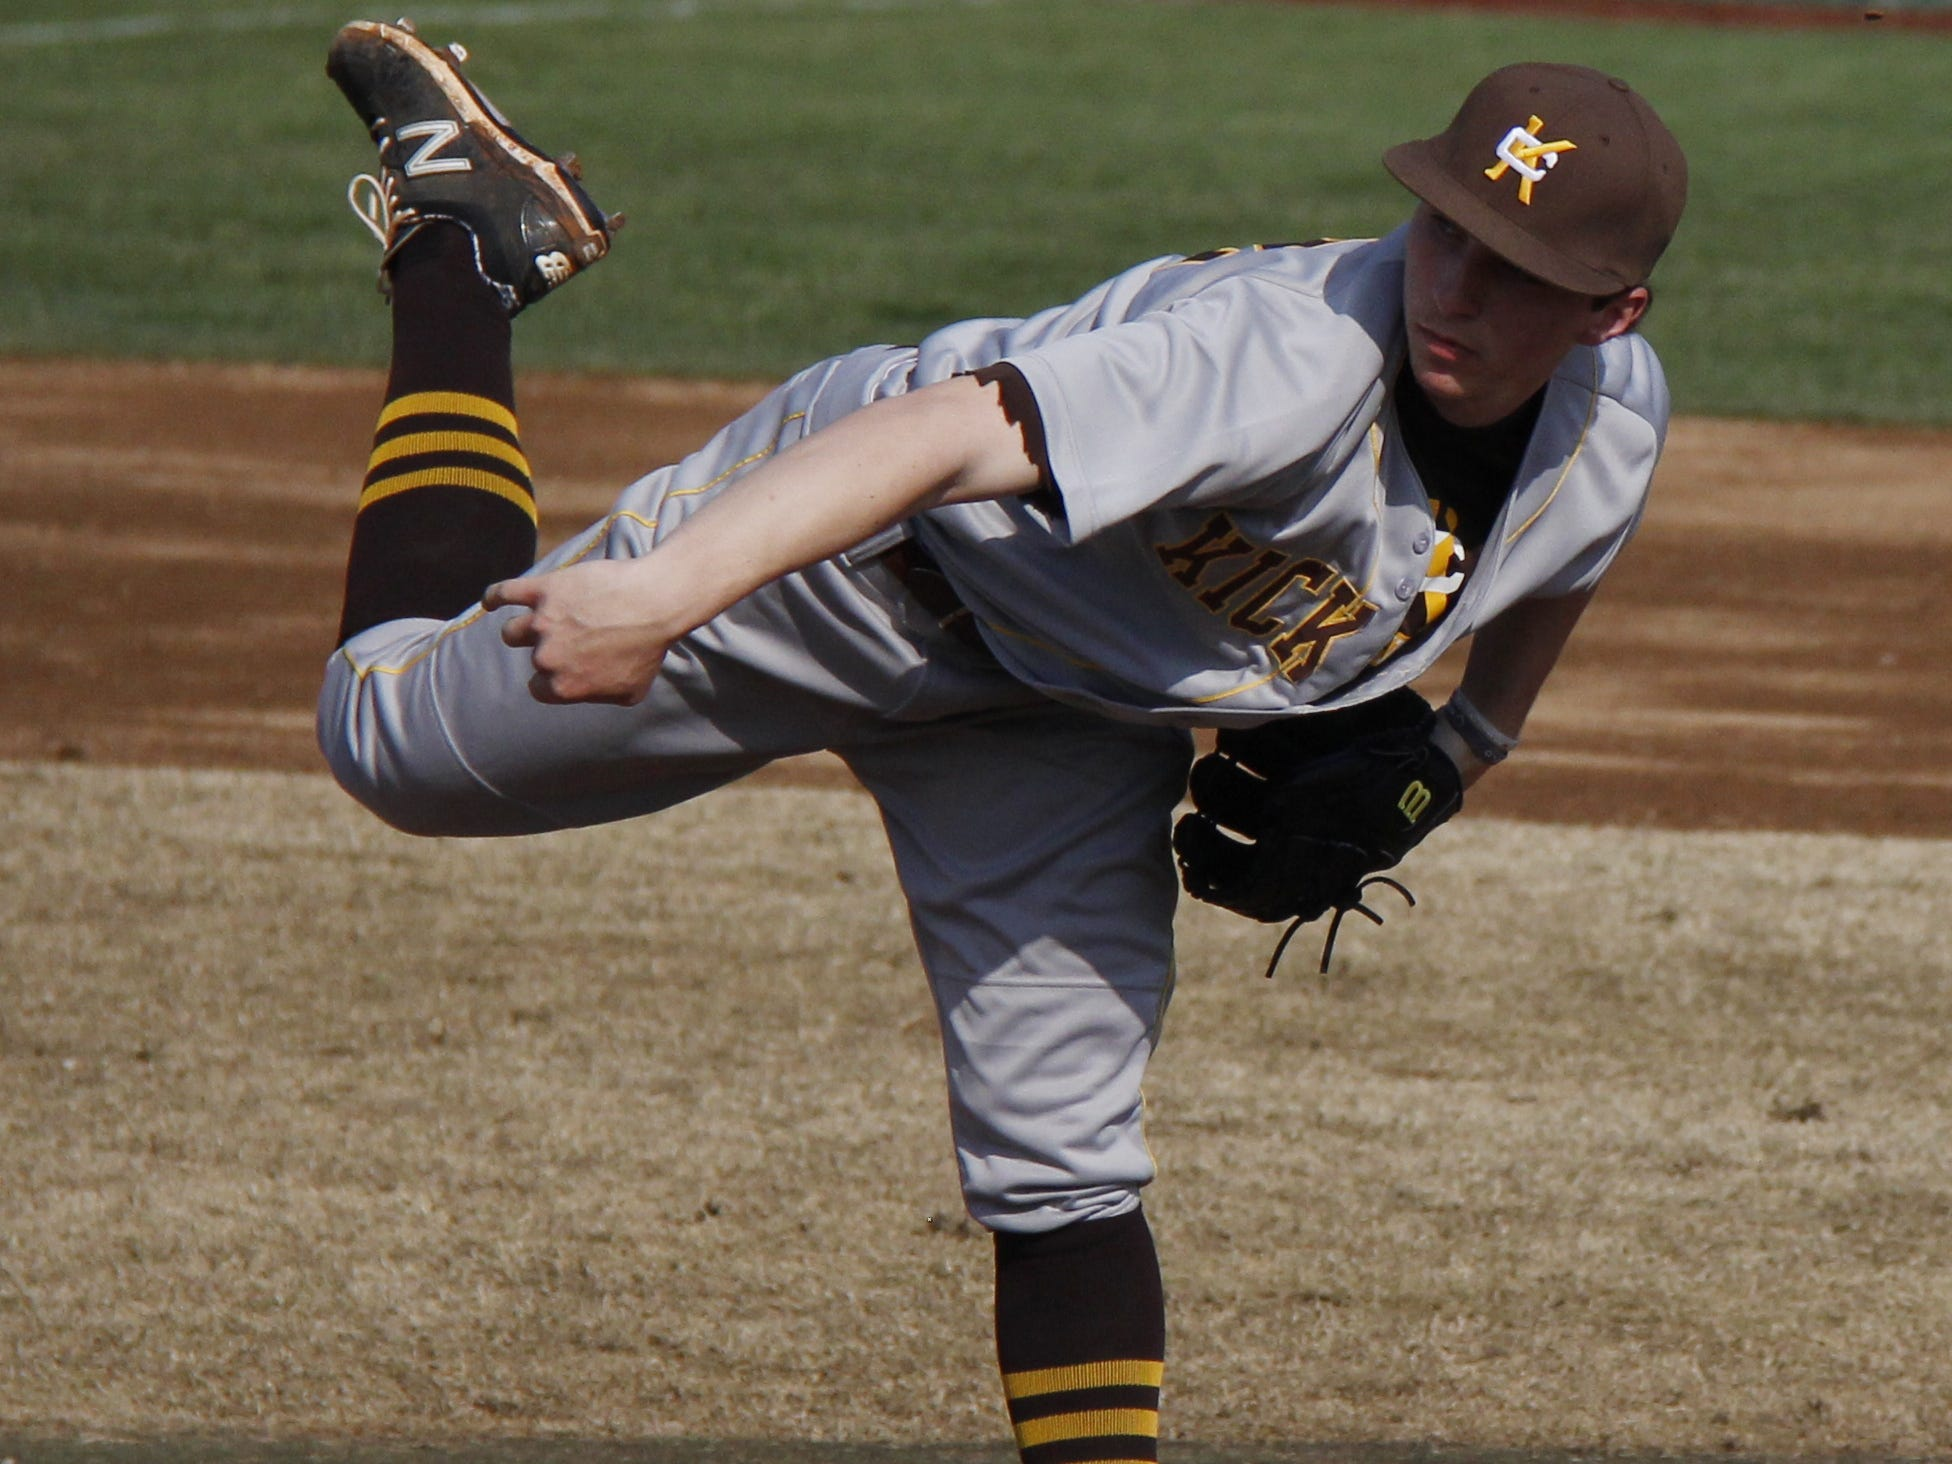 Kickapoo pitcher Kaleb Schmidt is one of a trio of juniors to step up to start games for the varsity Chiefs this season.